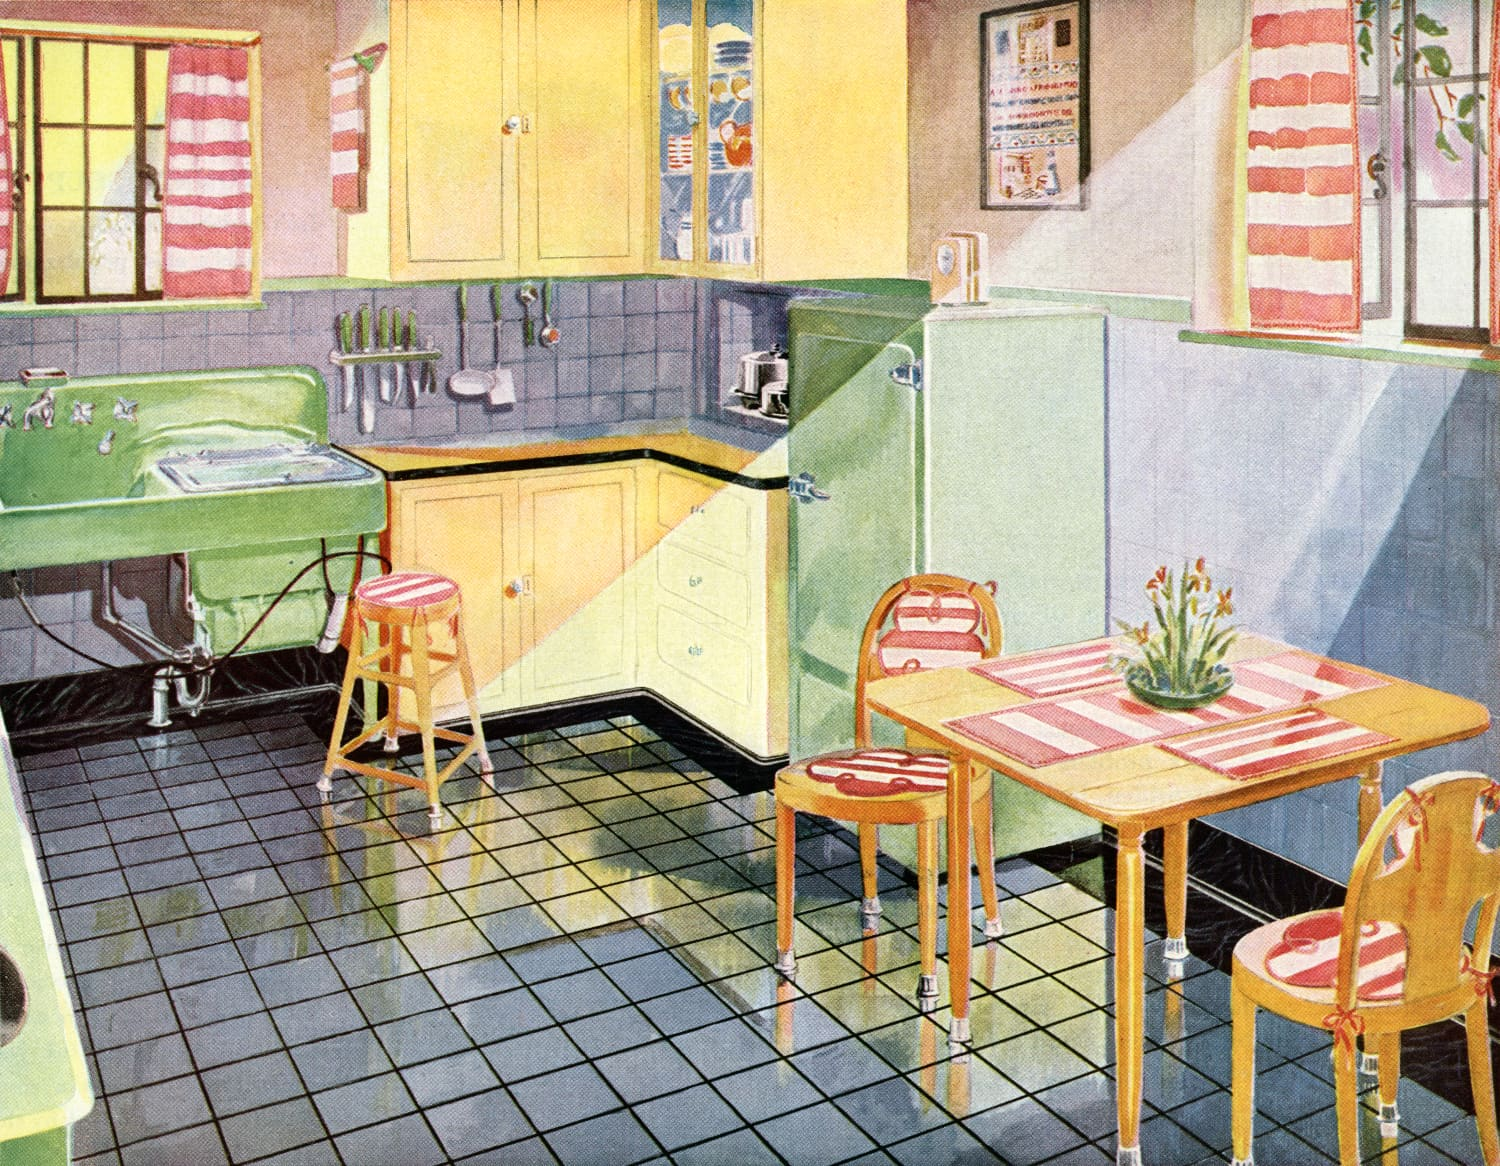 Think You Have it Bad? Here's What Kitchens Were Like A Century Ago